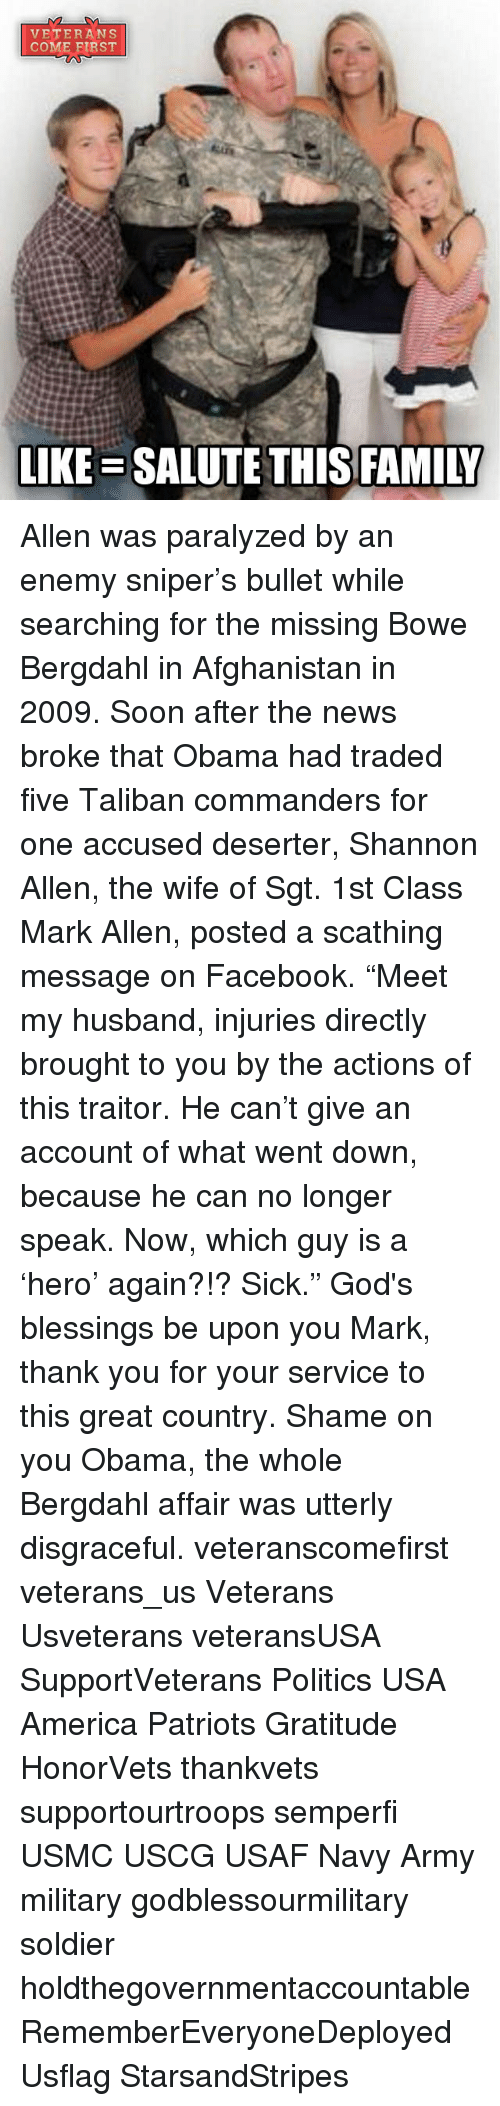 "Memes, Scathing, and 🤖: VETERANS  COME FIRST  LIKE SALUTE THIS FAMILY Allen was paralyzed by an enemy sniper's bullet while searching for the missing Bowe Bergdahl in Afghanistan in 2009. Soon after the news broke that Obama had traded five Taliban commanders for one accused deserter, Shannon Allen, the wife of Sgt. 1st Class Mark Allen, posted a scathing message on Facebook. ""Meet my husband, injuries directly brought to you by the actions of this traitor. He can't give an account of what went down, because he can no longer speak. Now, which guy is a 'hero' again?!? Sick."" God's blessings be upon you Mark, thank you for your service to this great country. Shame on you Obama, the whole Bergdahl affair was utterly disgraceful. veteranscomefirst veterans_us Veterans Usveterans veteransUSA SupportVeterans Politics USA America Patriots Gratitude HonorVets thankvets supportourtroops semperfi USMC USCG USAF Navy Army military godblessourmilitary soldier holdthegovernmentaccountable RememberEveryoneDeployed Usflag StarsandStripes"